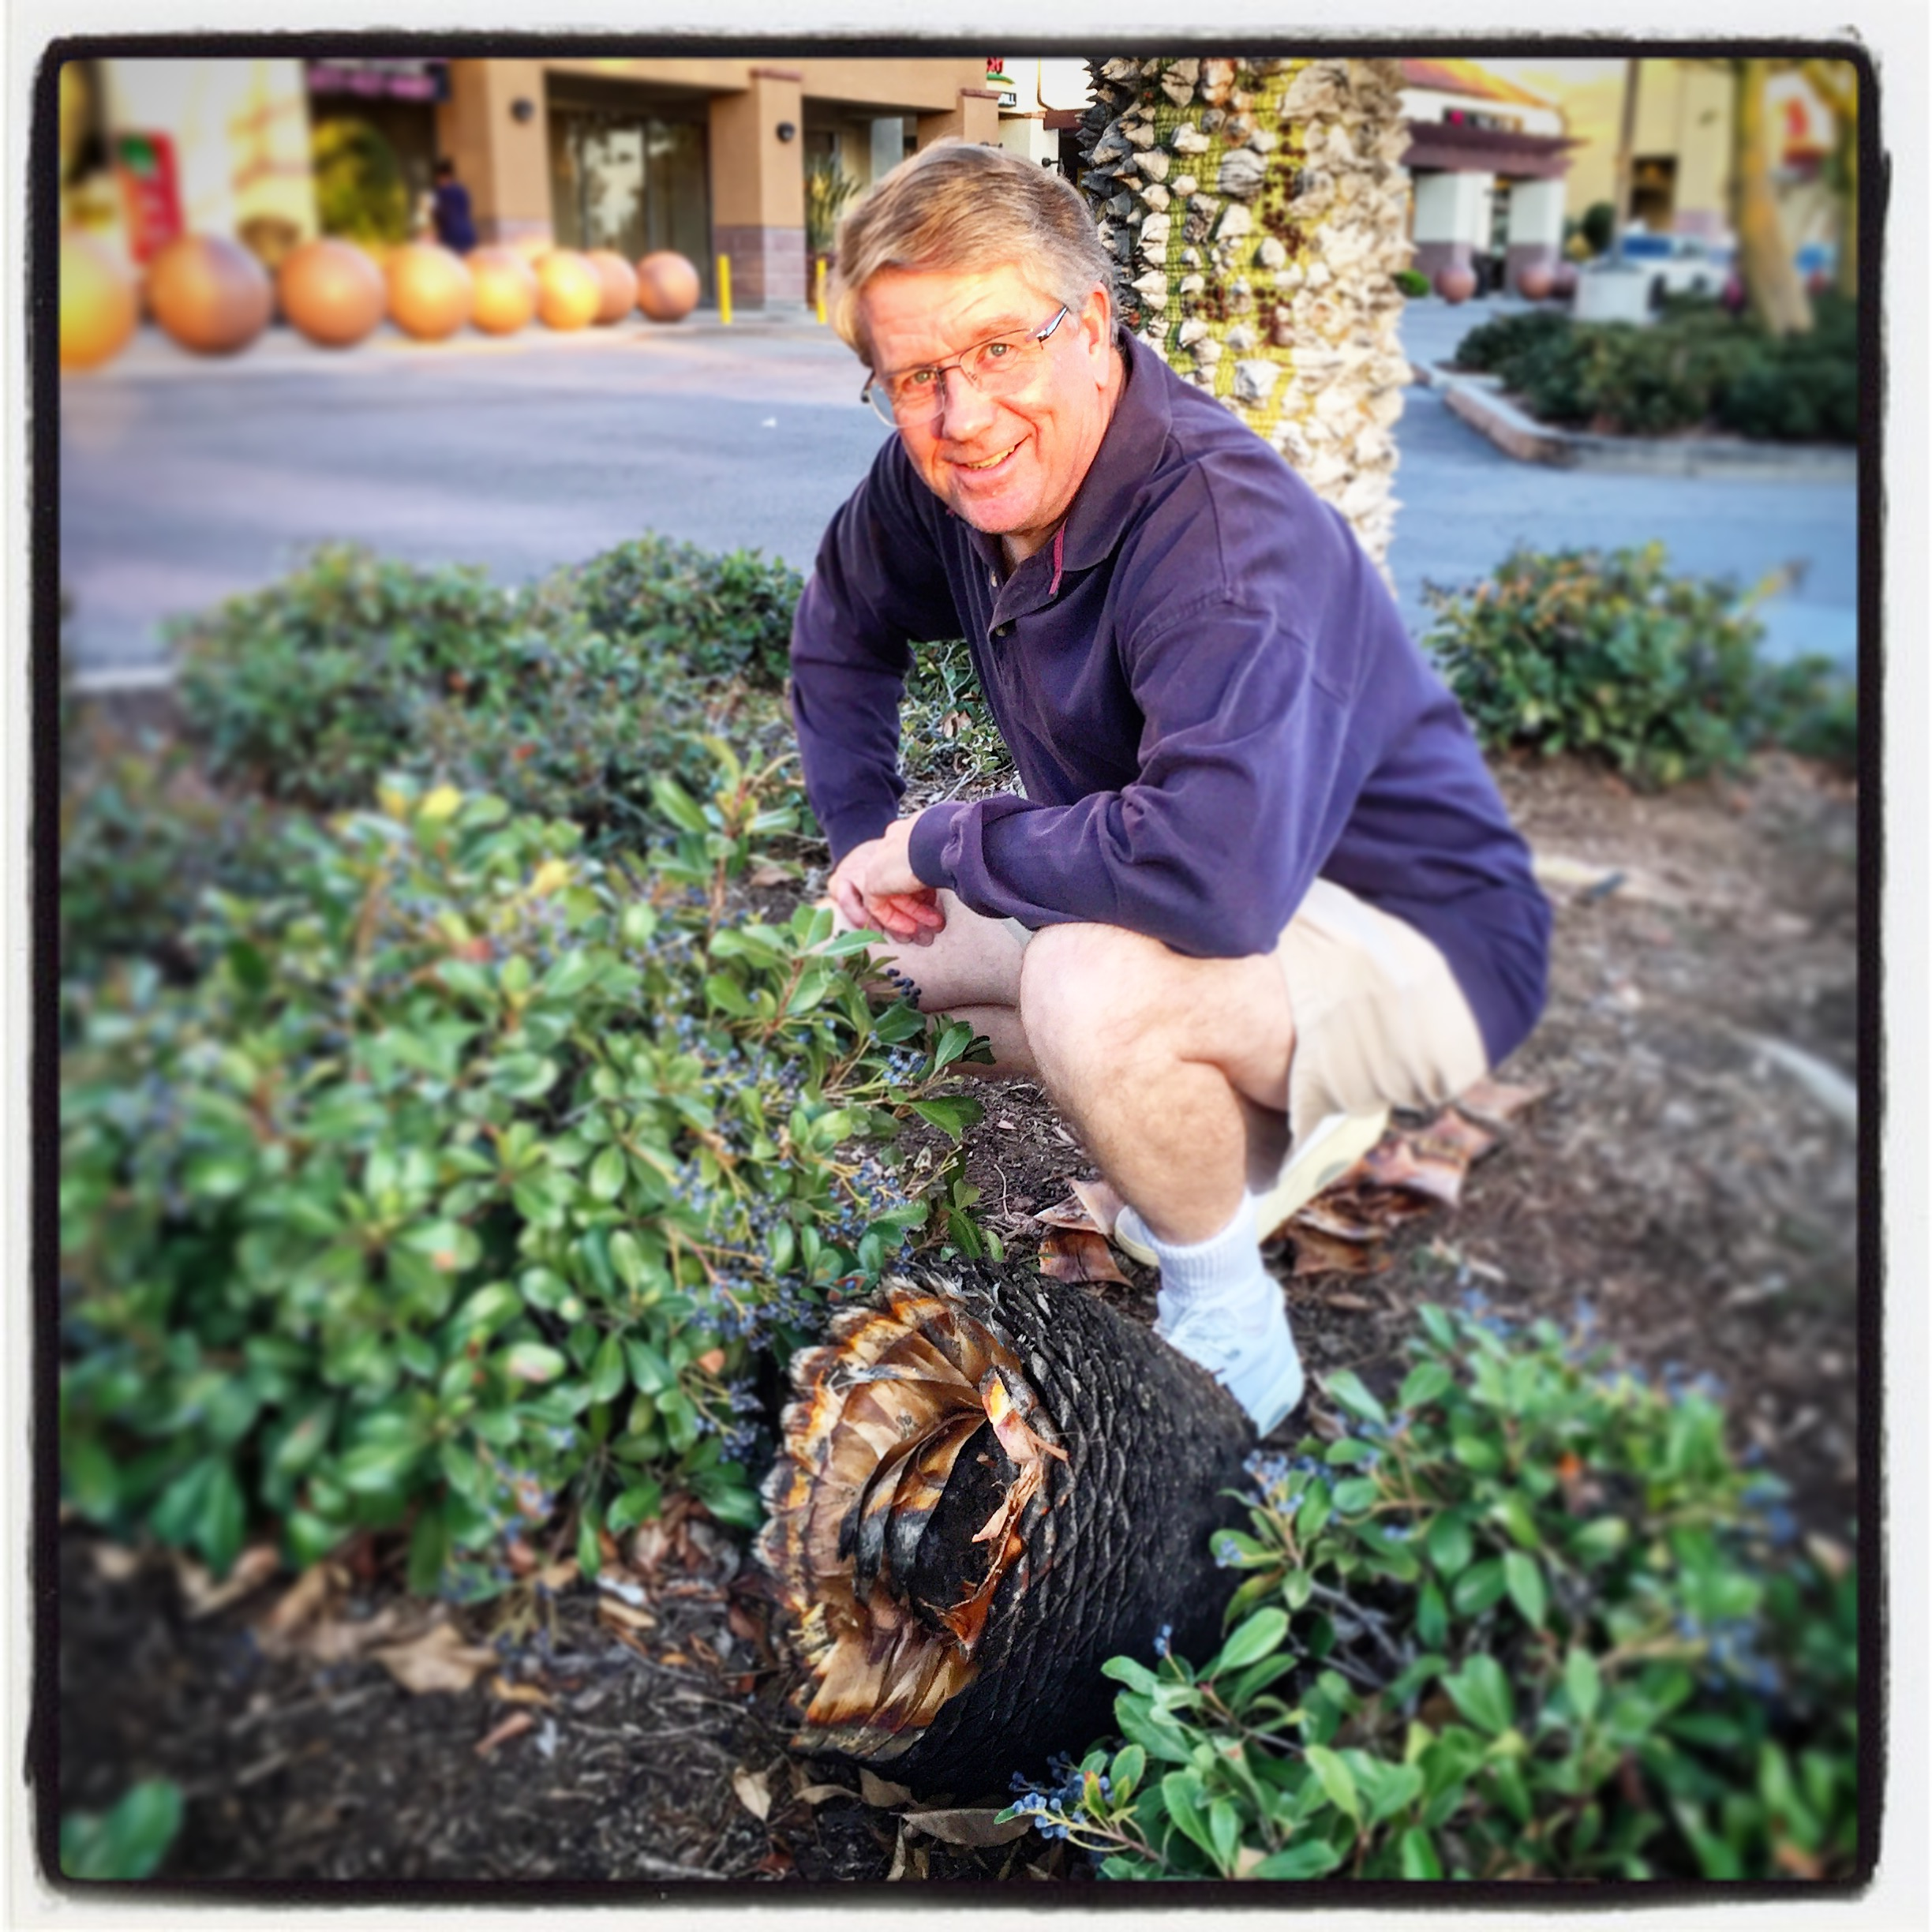 P.S. This is my dad during this shopping trip. He's posing with a giant pinecone as though he hunted it. It was pretty funny.